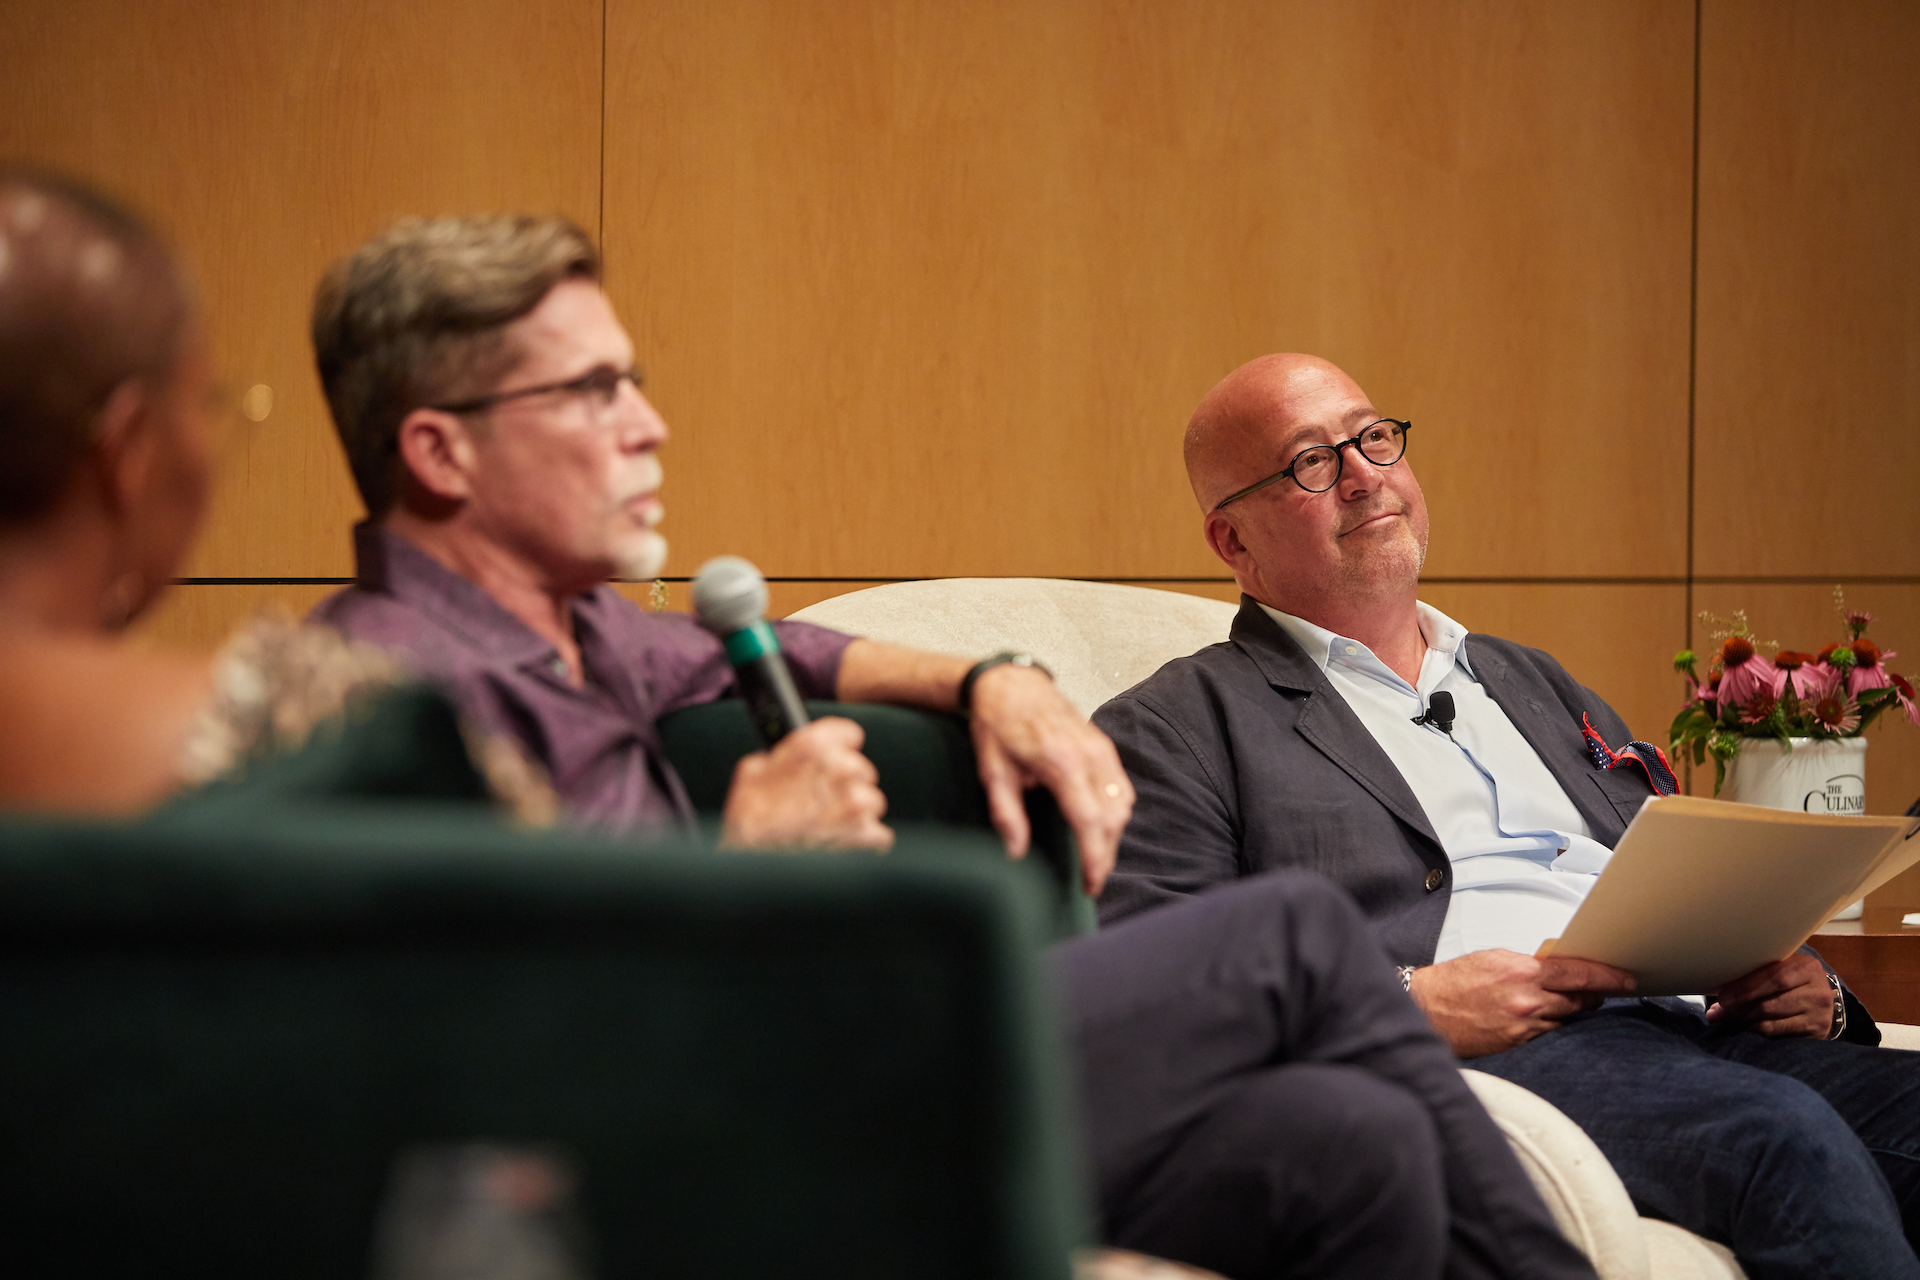 Andrew Zimmern listens on as Rick Bayless answers a question from the crowd.